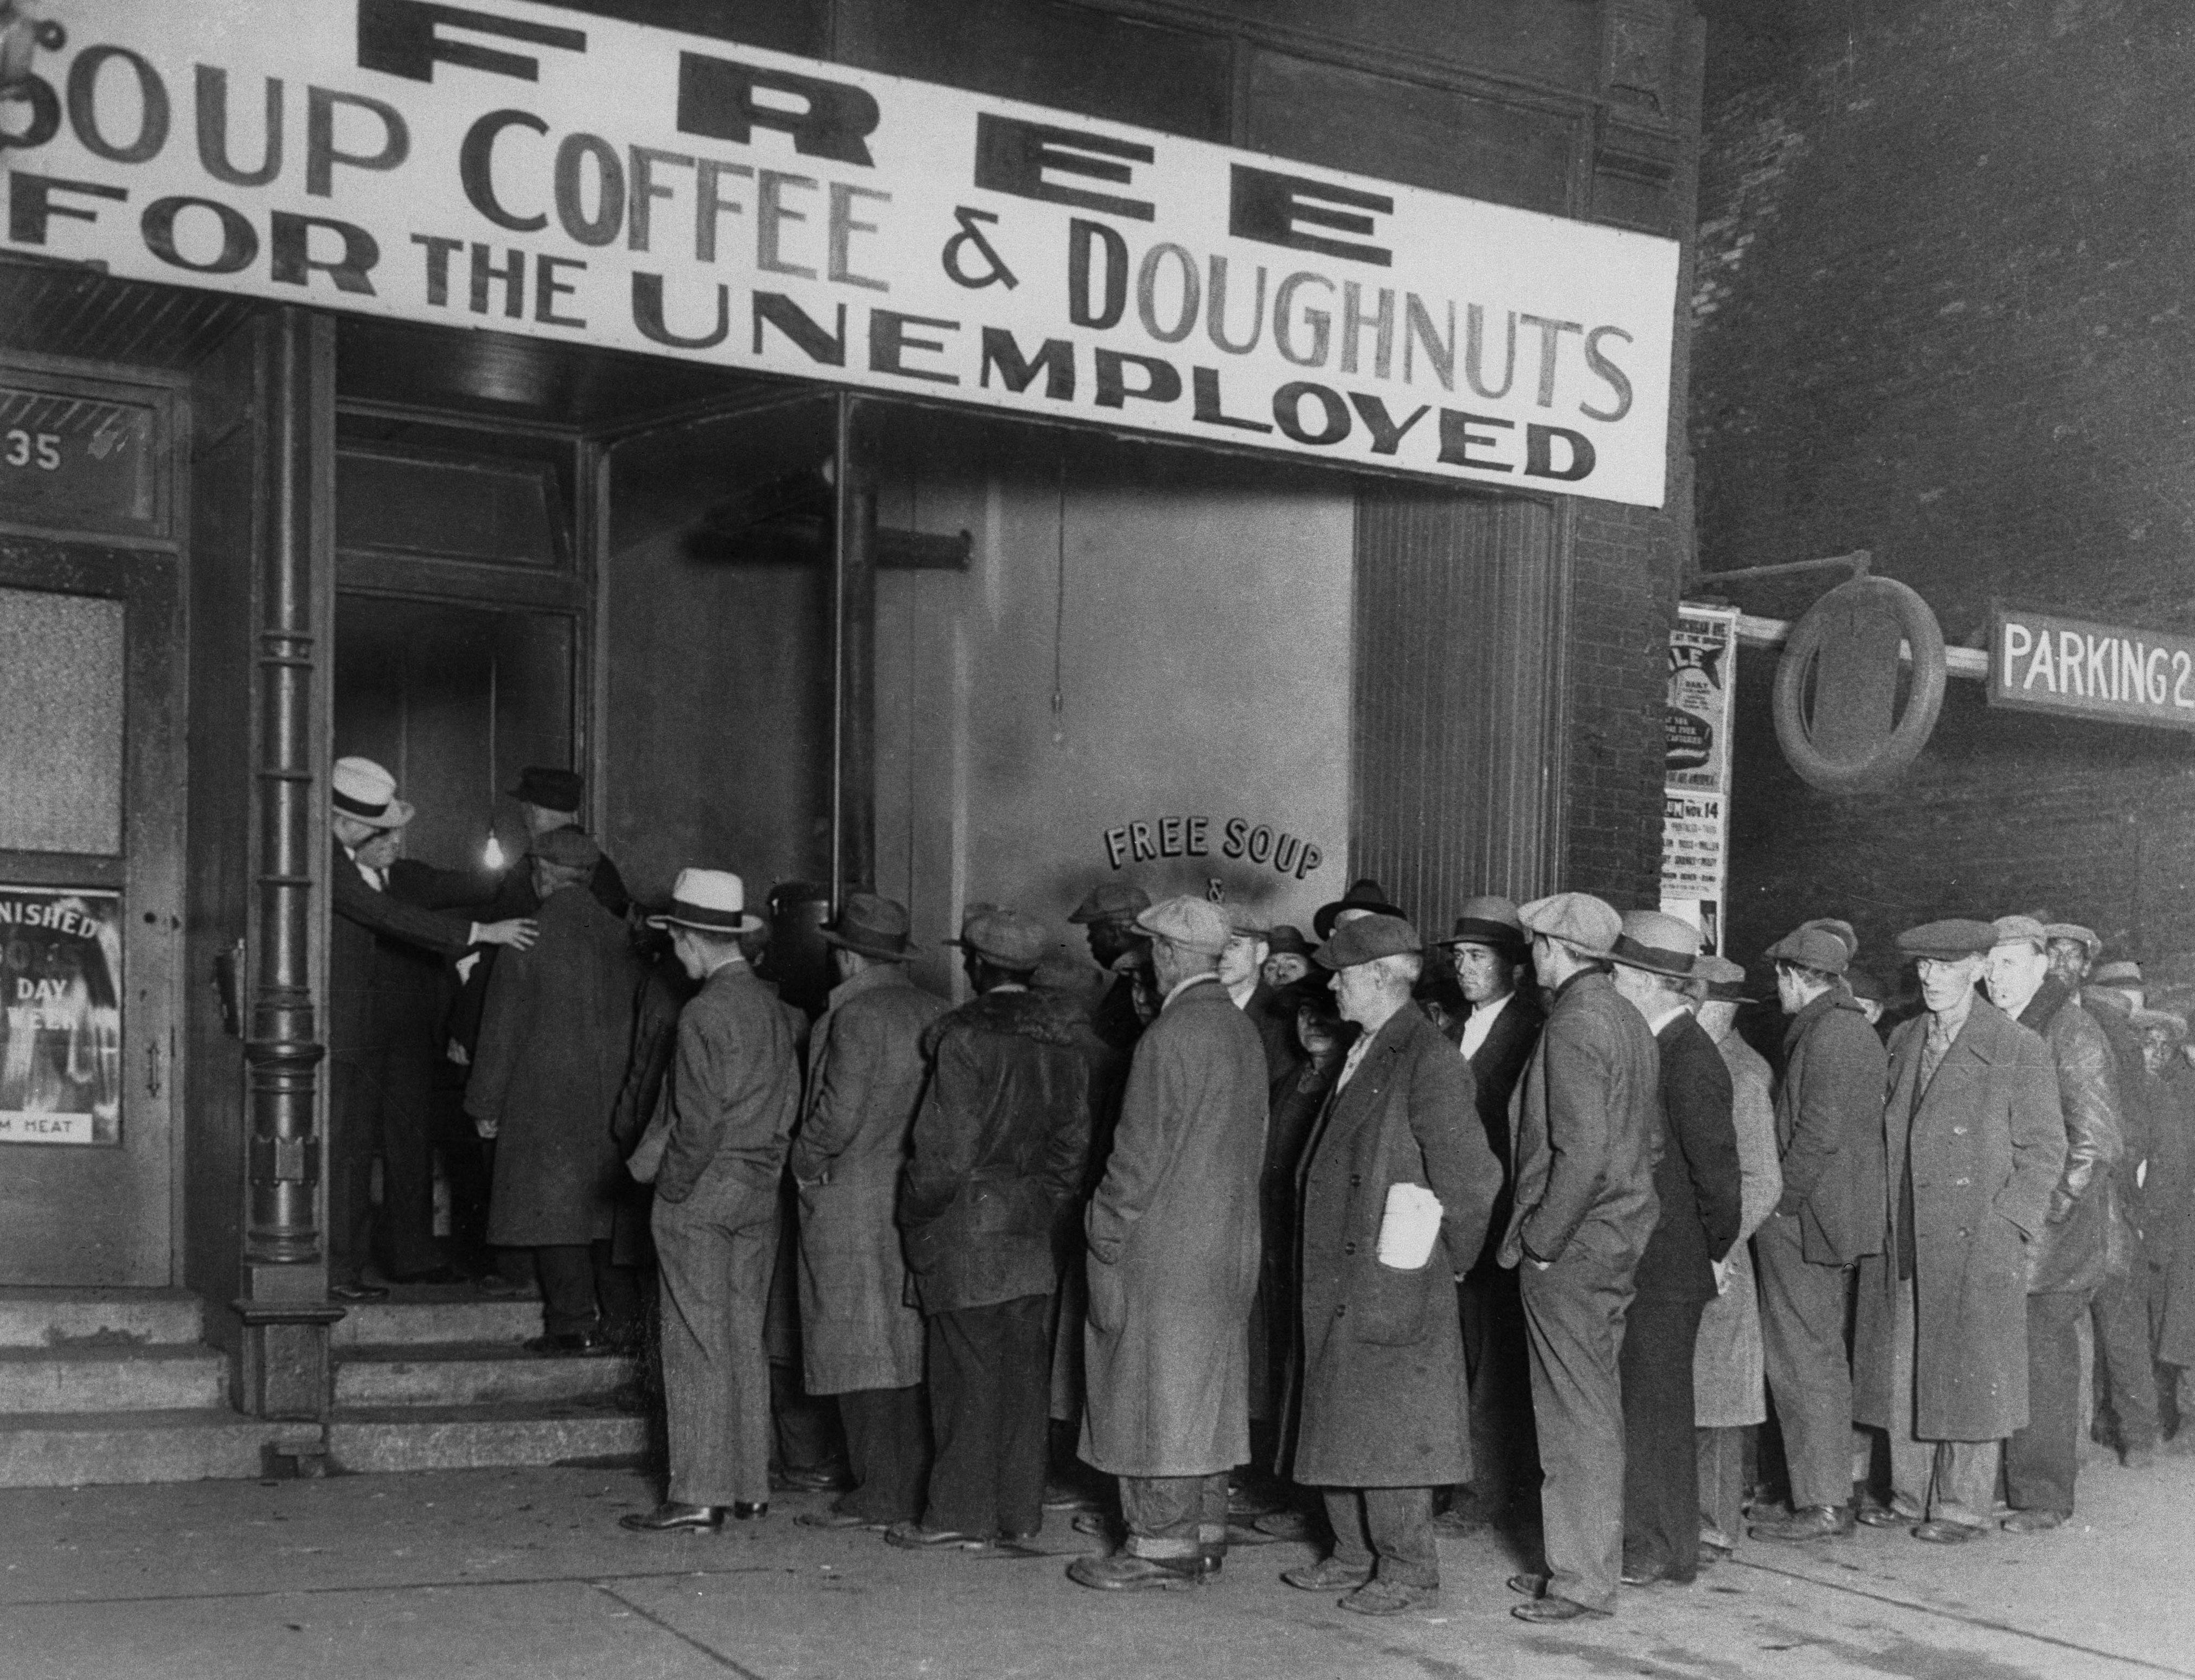 an analysis of the new deal program during the united states economic depression in the 1930s Conclusion: the legacy of the new deal system in the united states it was drafted during franklin d amid the economic calamity of the great depression.